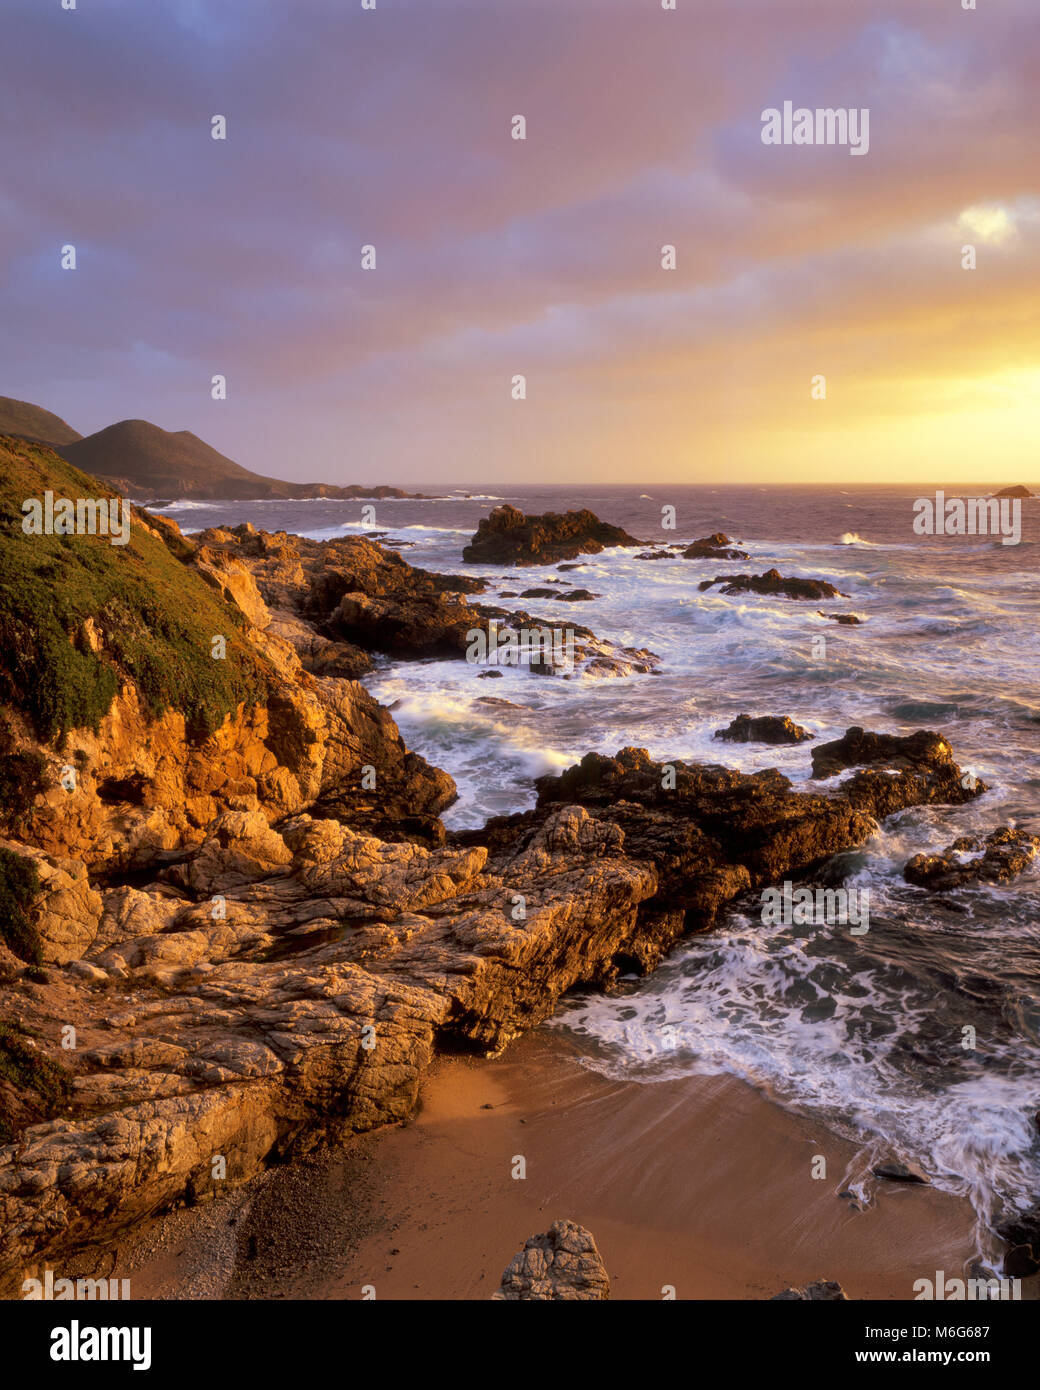 Sunset, Surf, Garrapata State Park, Big Sur, Monterey County, California - Stock Image